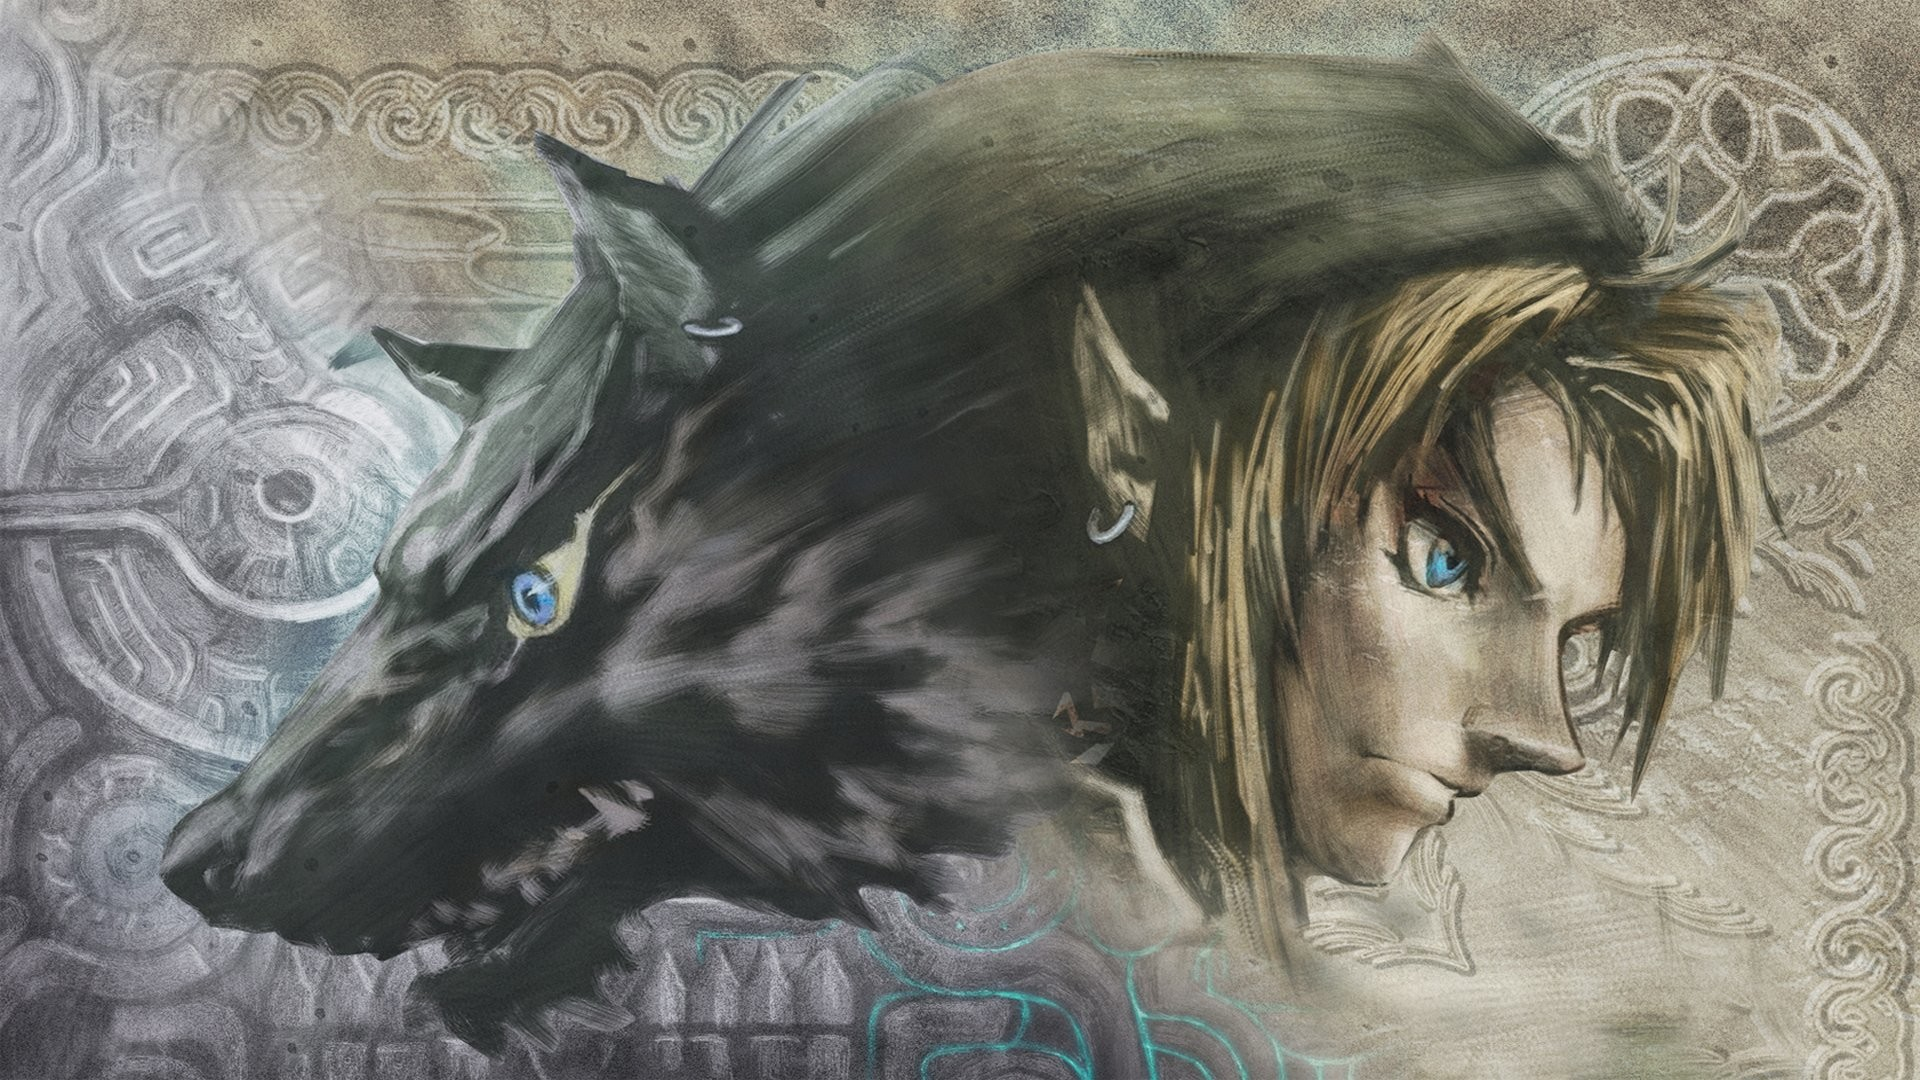 Zelda Live Wallpaper Legend Of Zelda Twilight Princess Hd Link